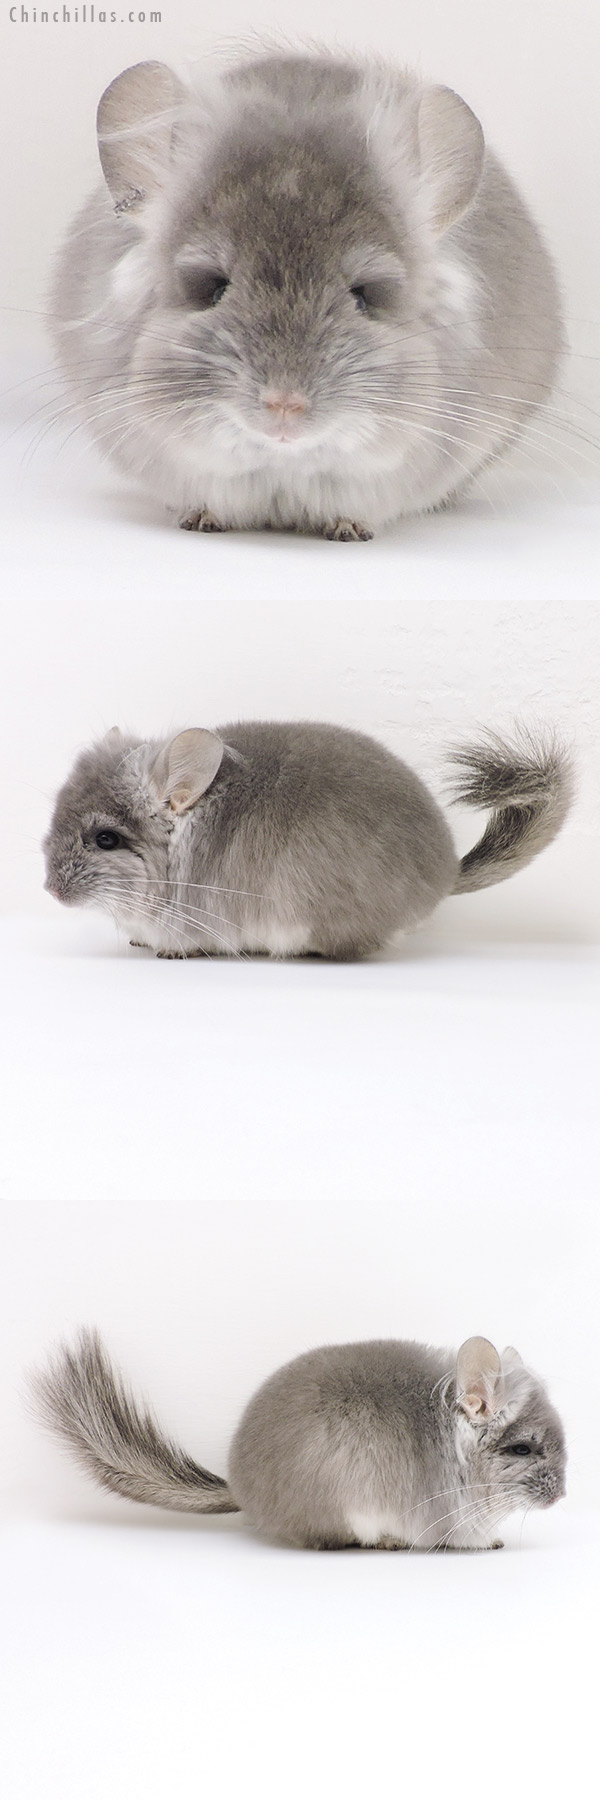 17210 Violet CCCU Royal Persian Angora Male with Ear Tufts Chinchilla